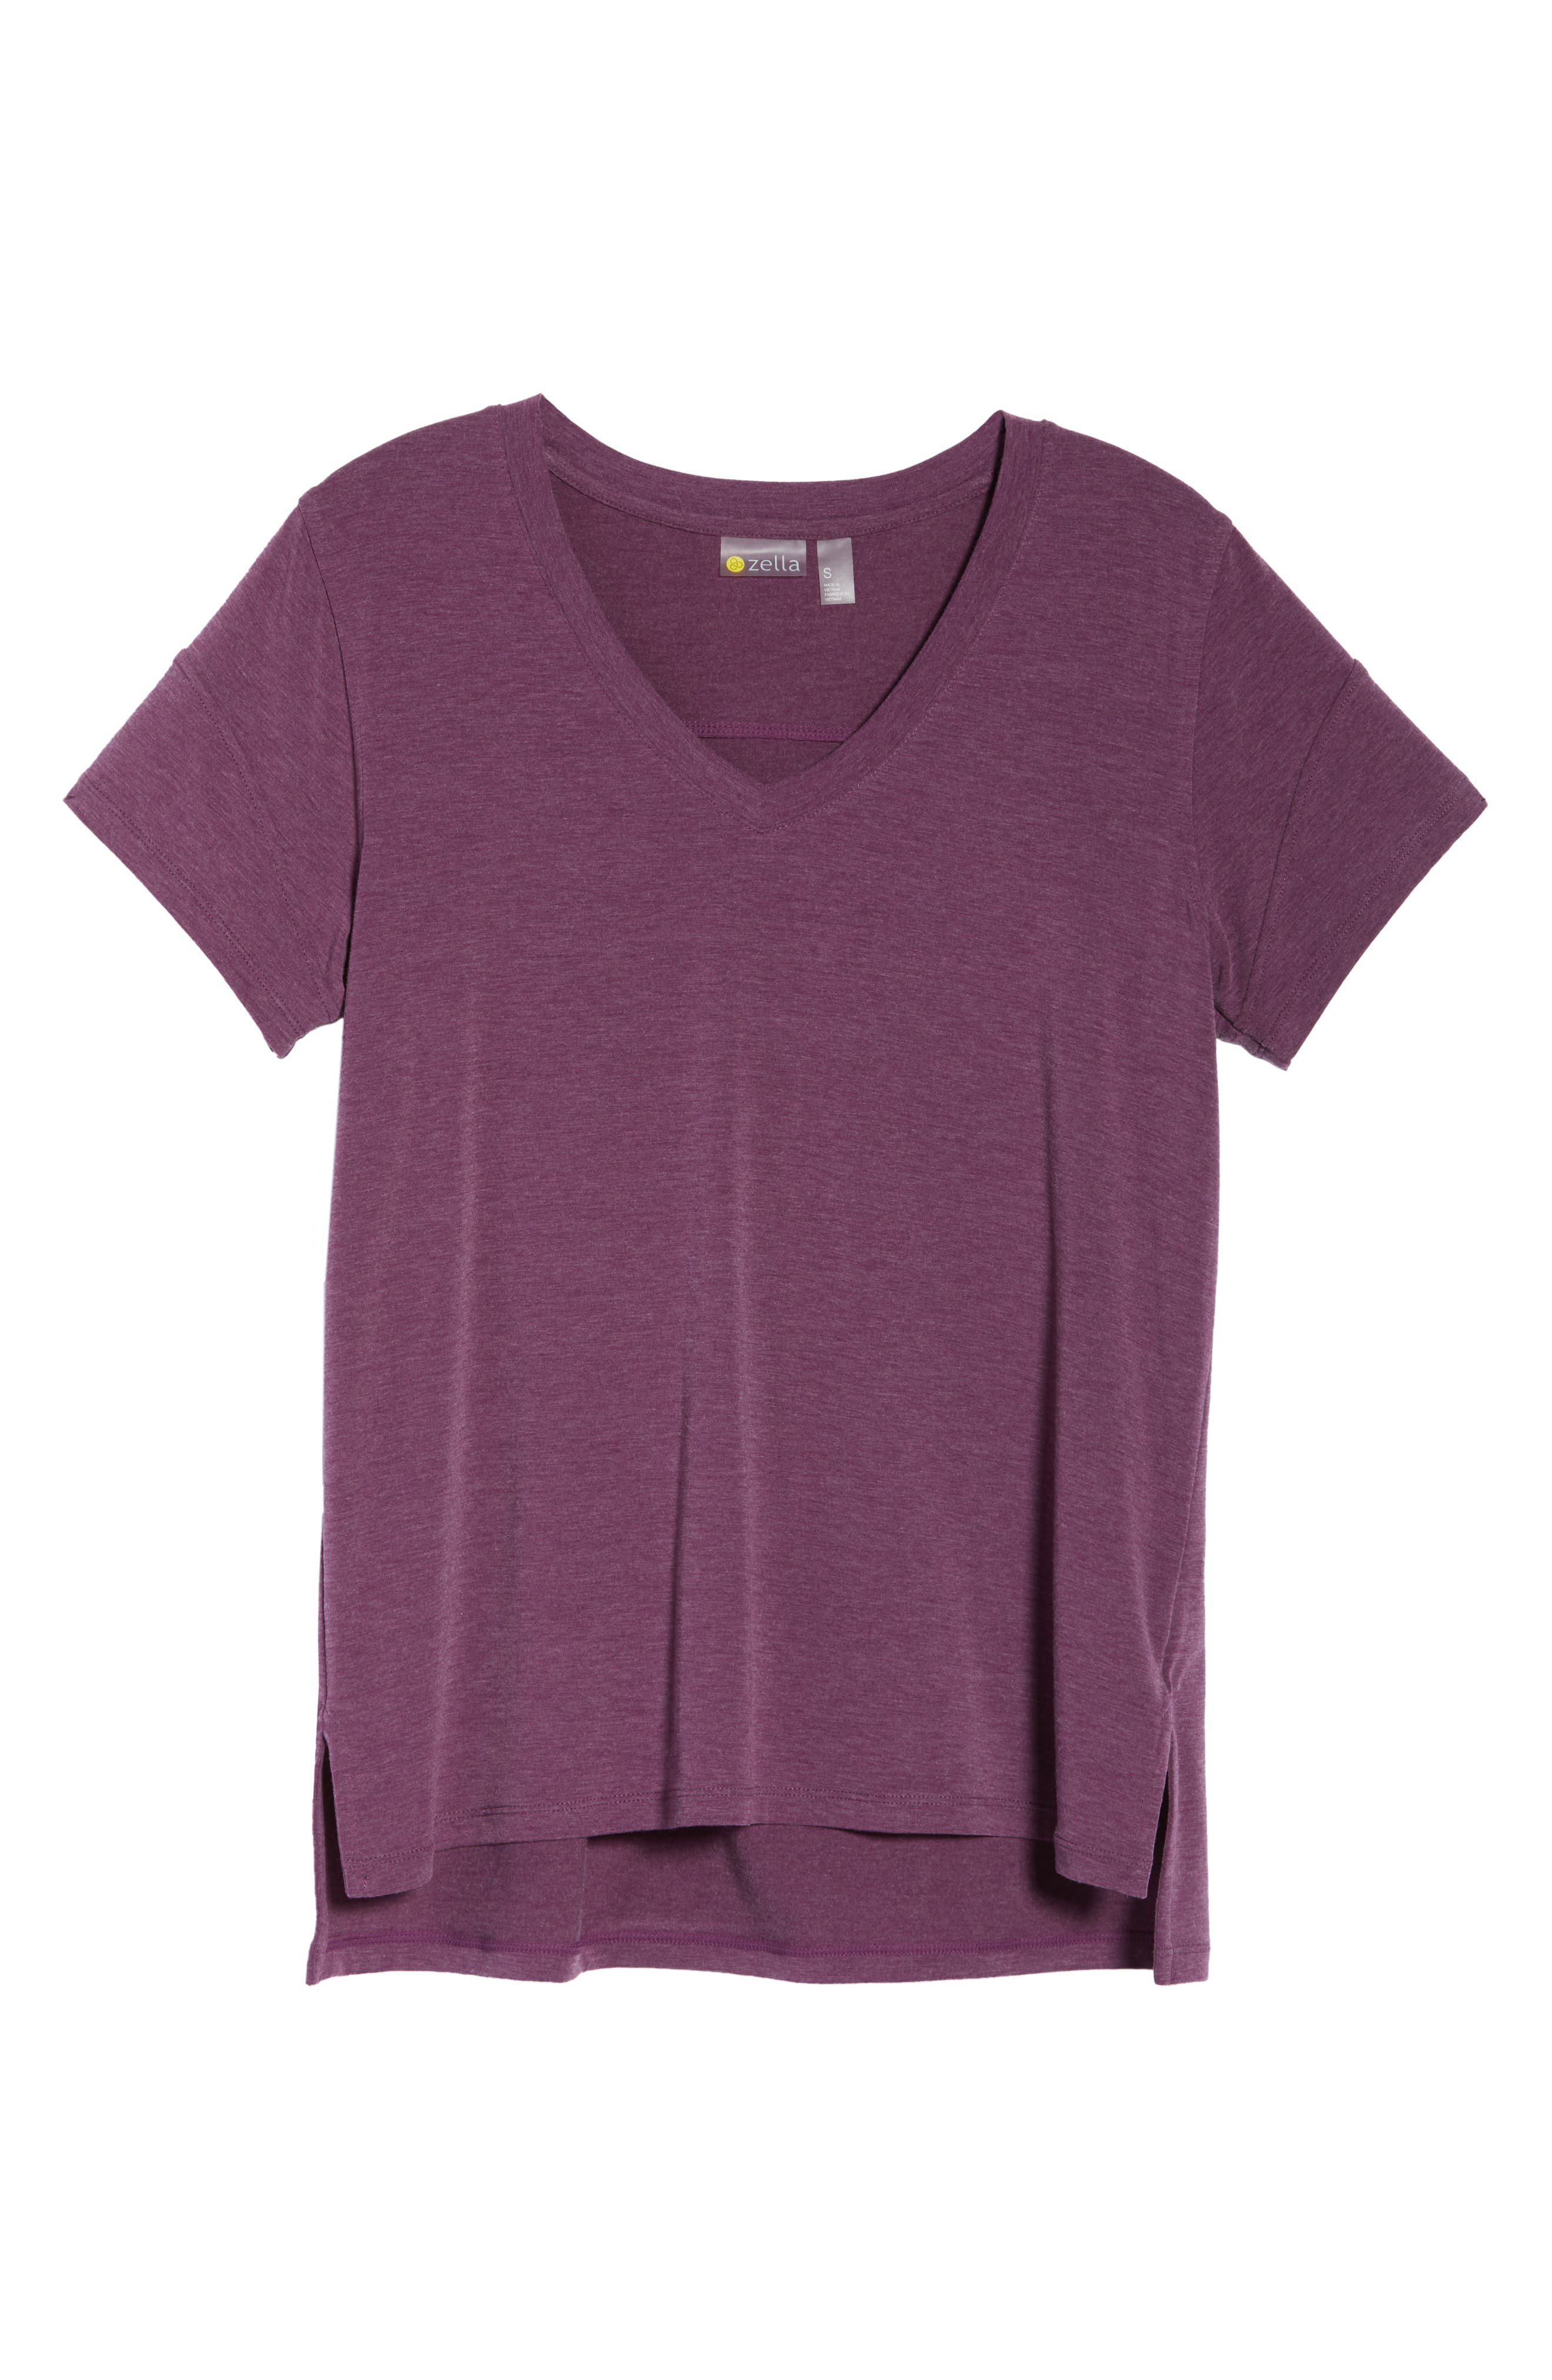 ZELLA,                             Ava Quick-Dry Tee,                             Alternate thumbnail 7, color,                             PURPLE ODYSSEY